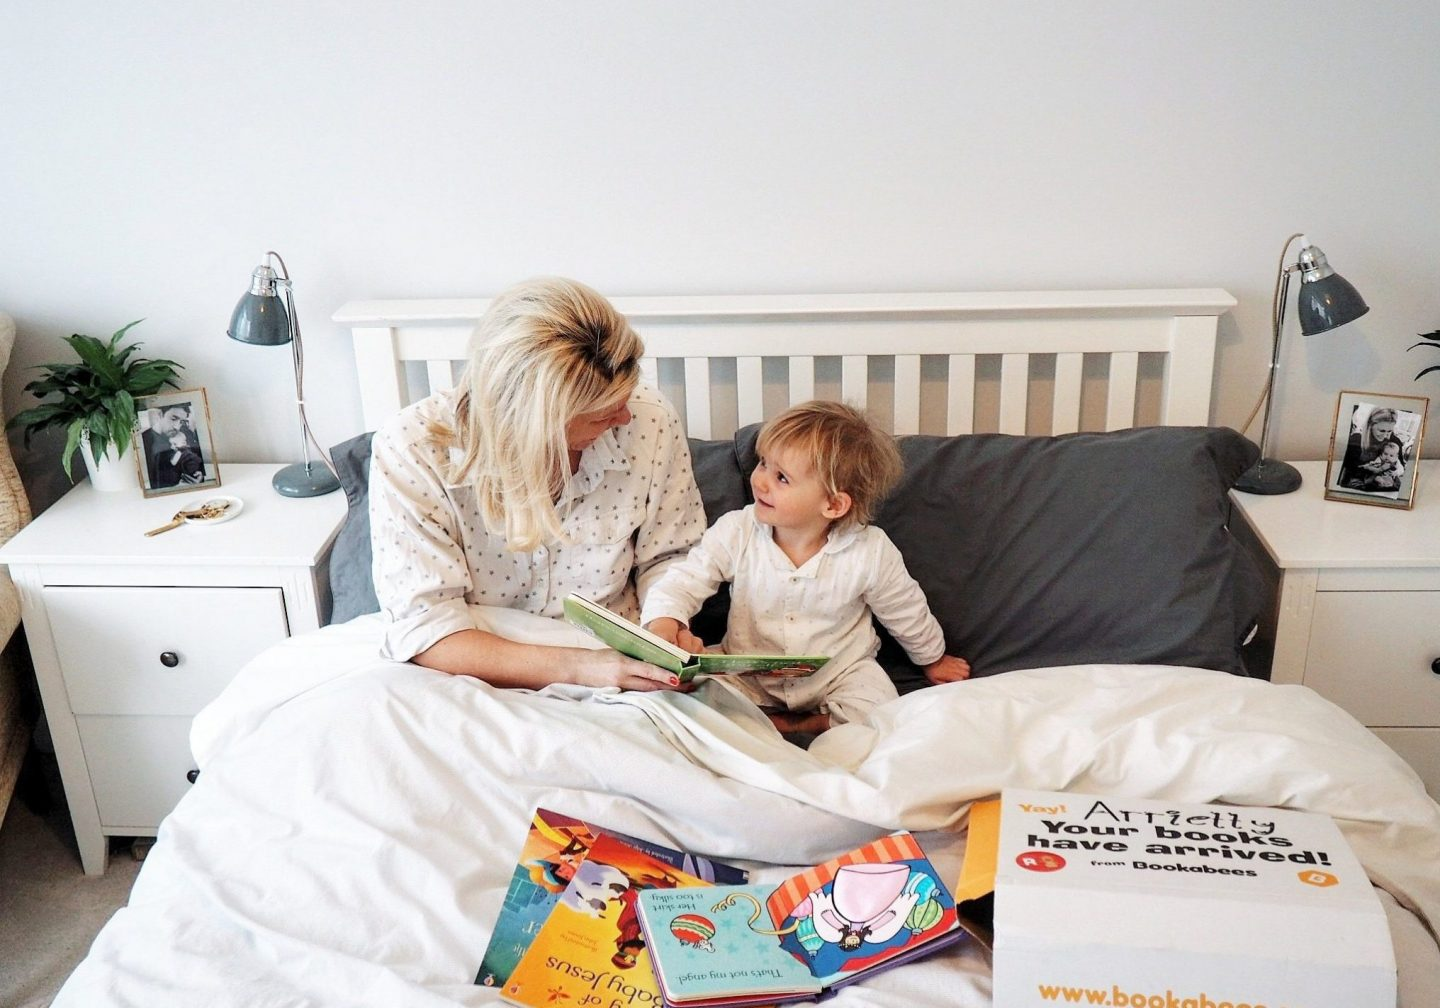 Ettie and Mummy reading Bookabees books in bed